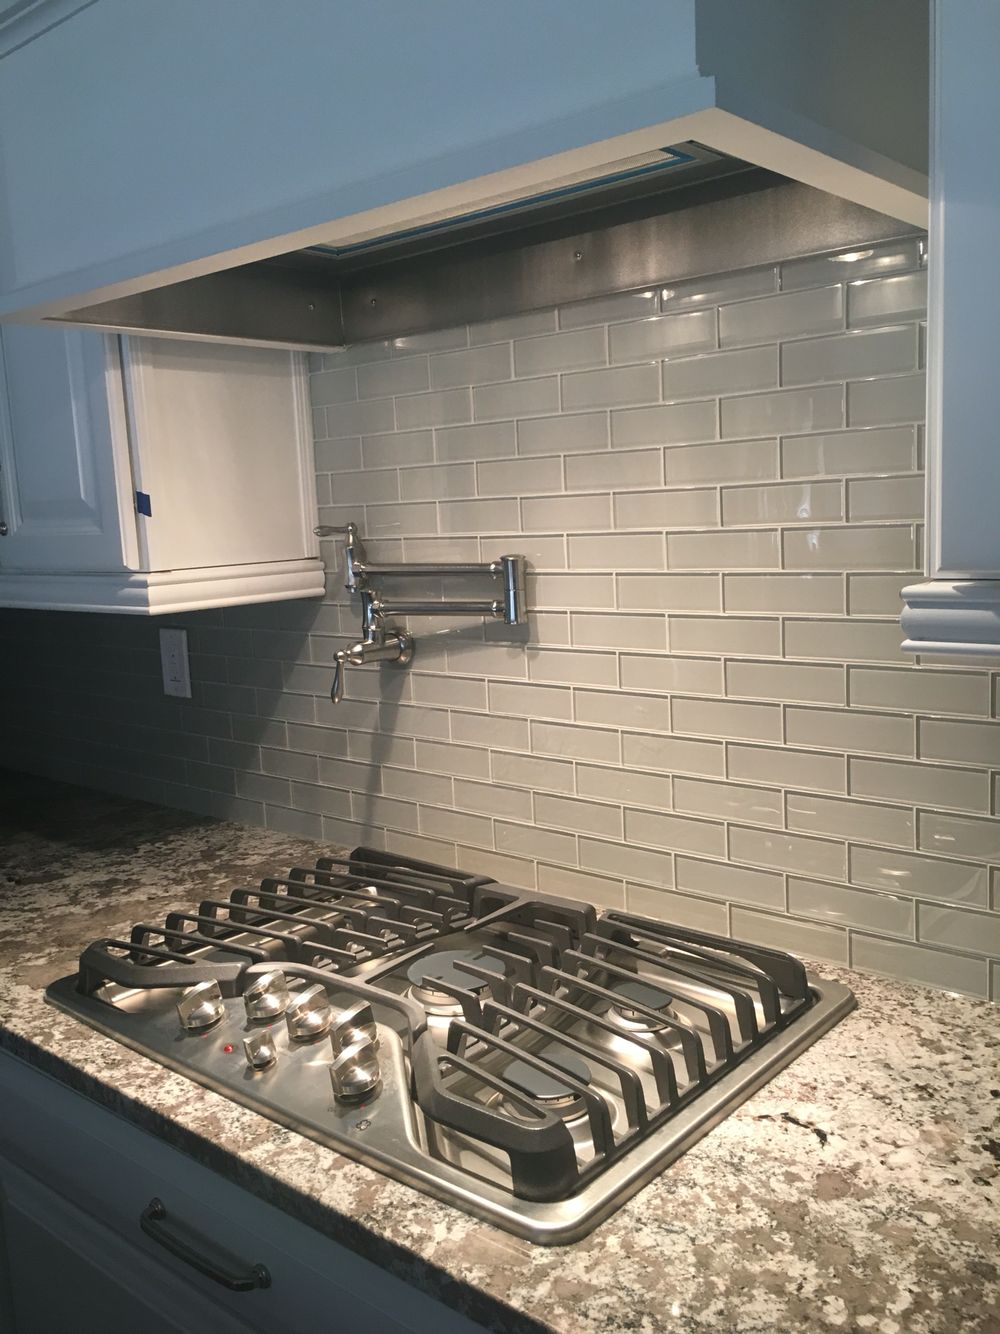 bianco antico granite mist glass tile backsplash white cabinets 5 burner ge profile